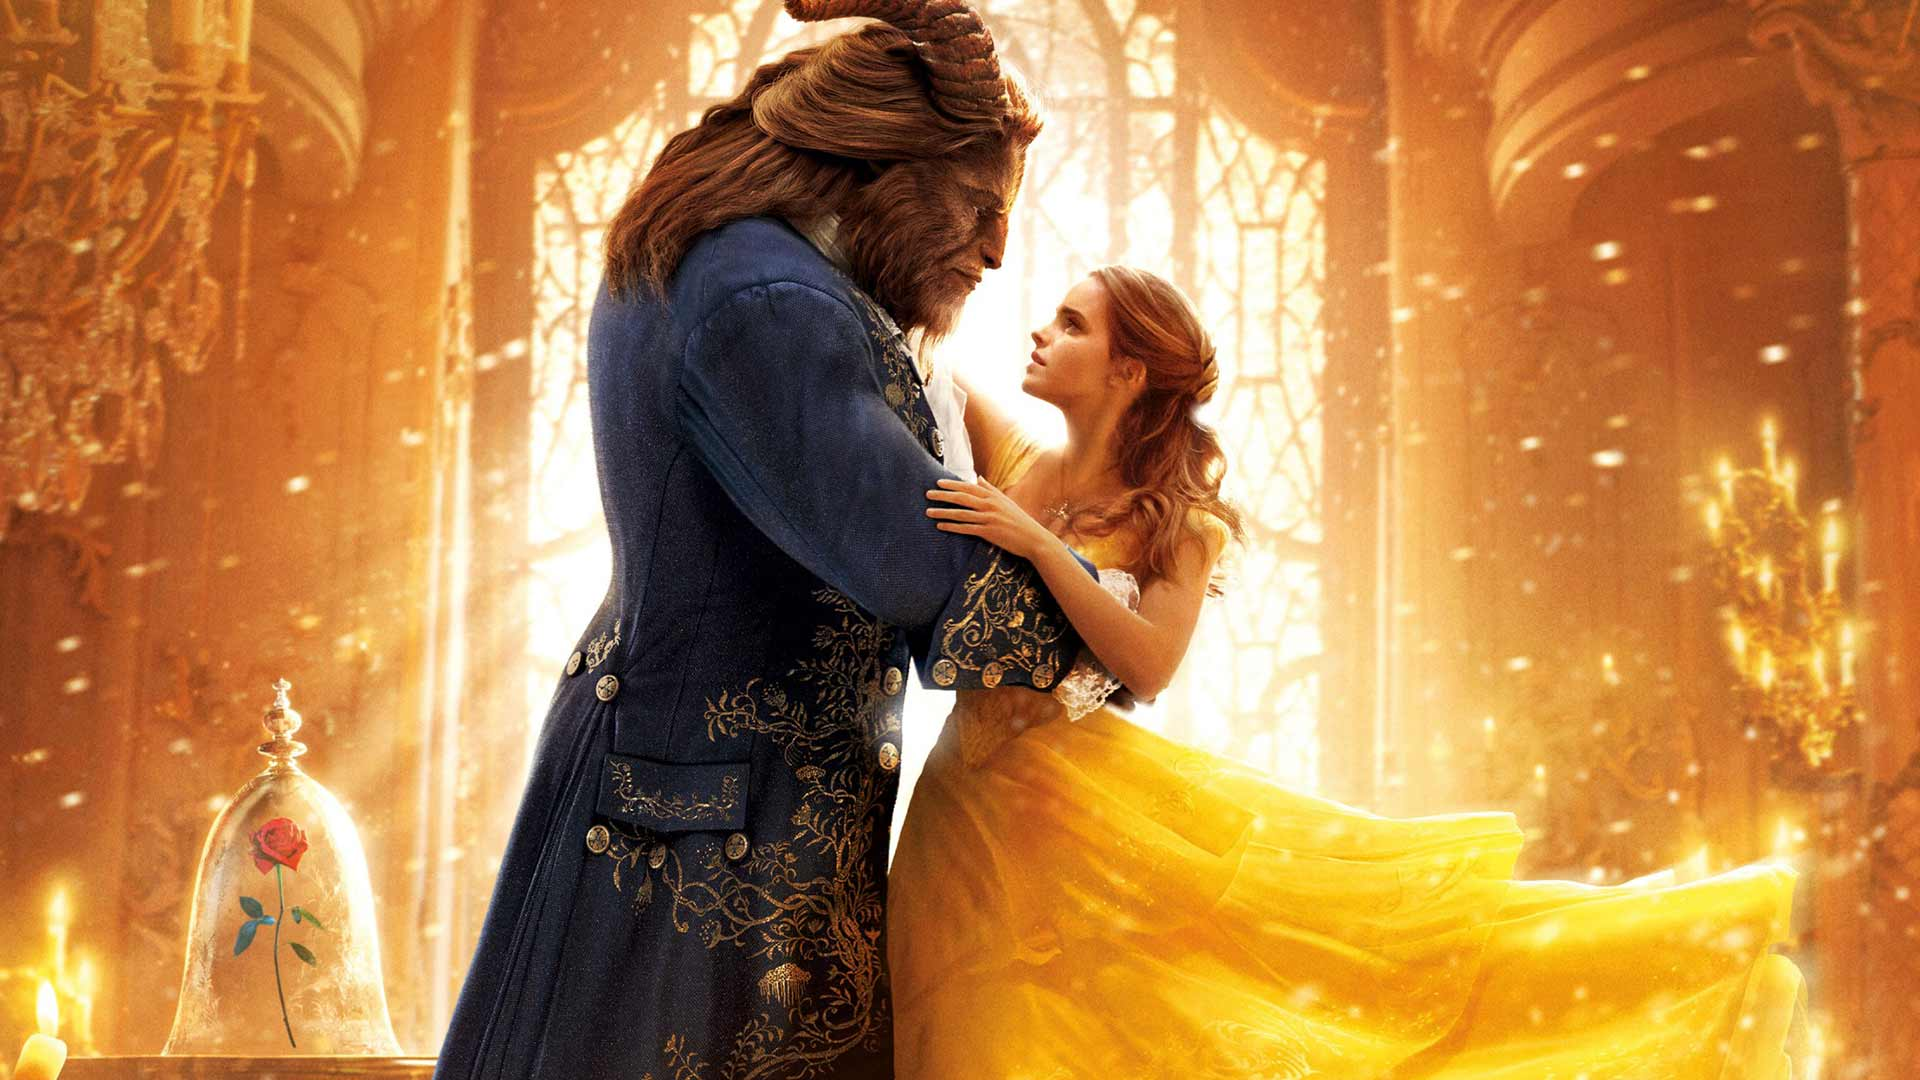 Beauty-and-the-Beast-2017-after-credits-hq-zioaby.jpg